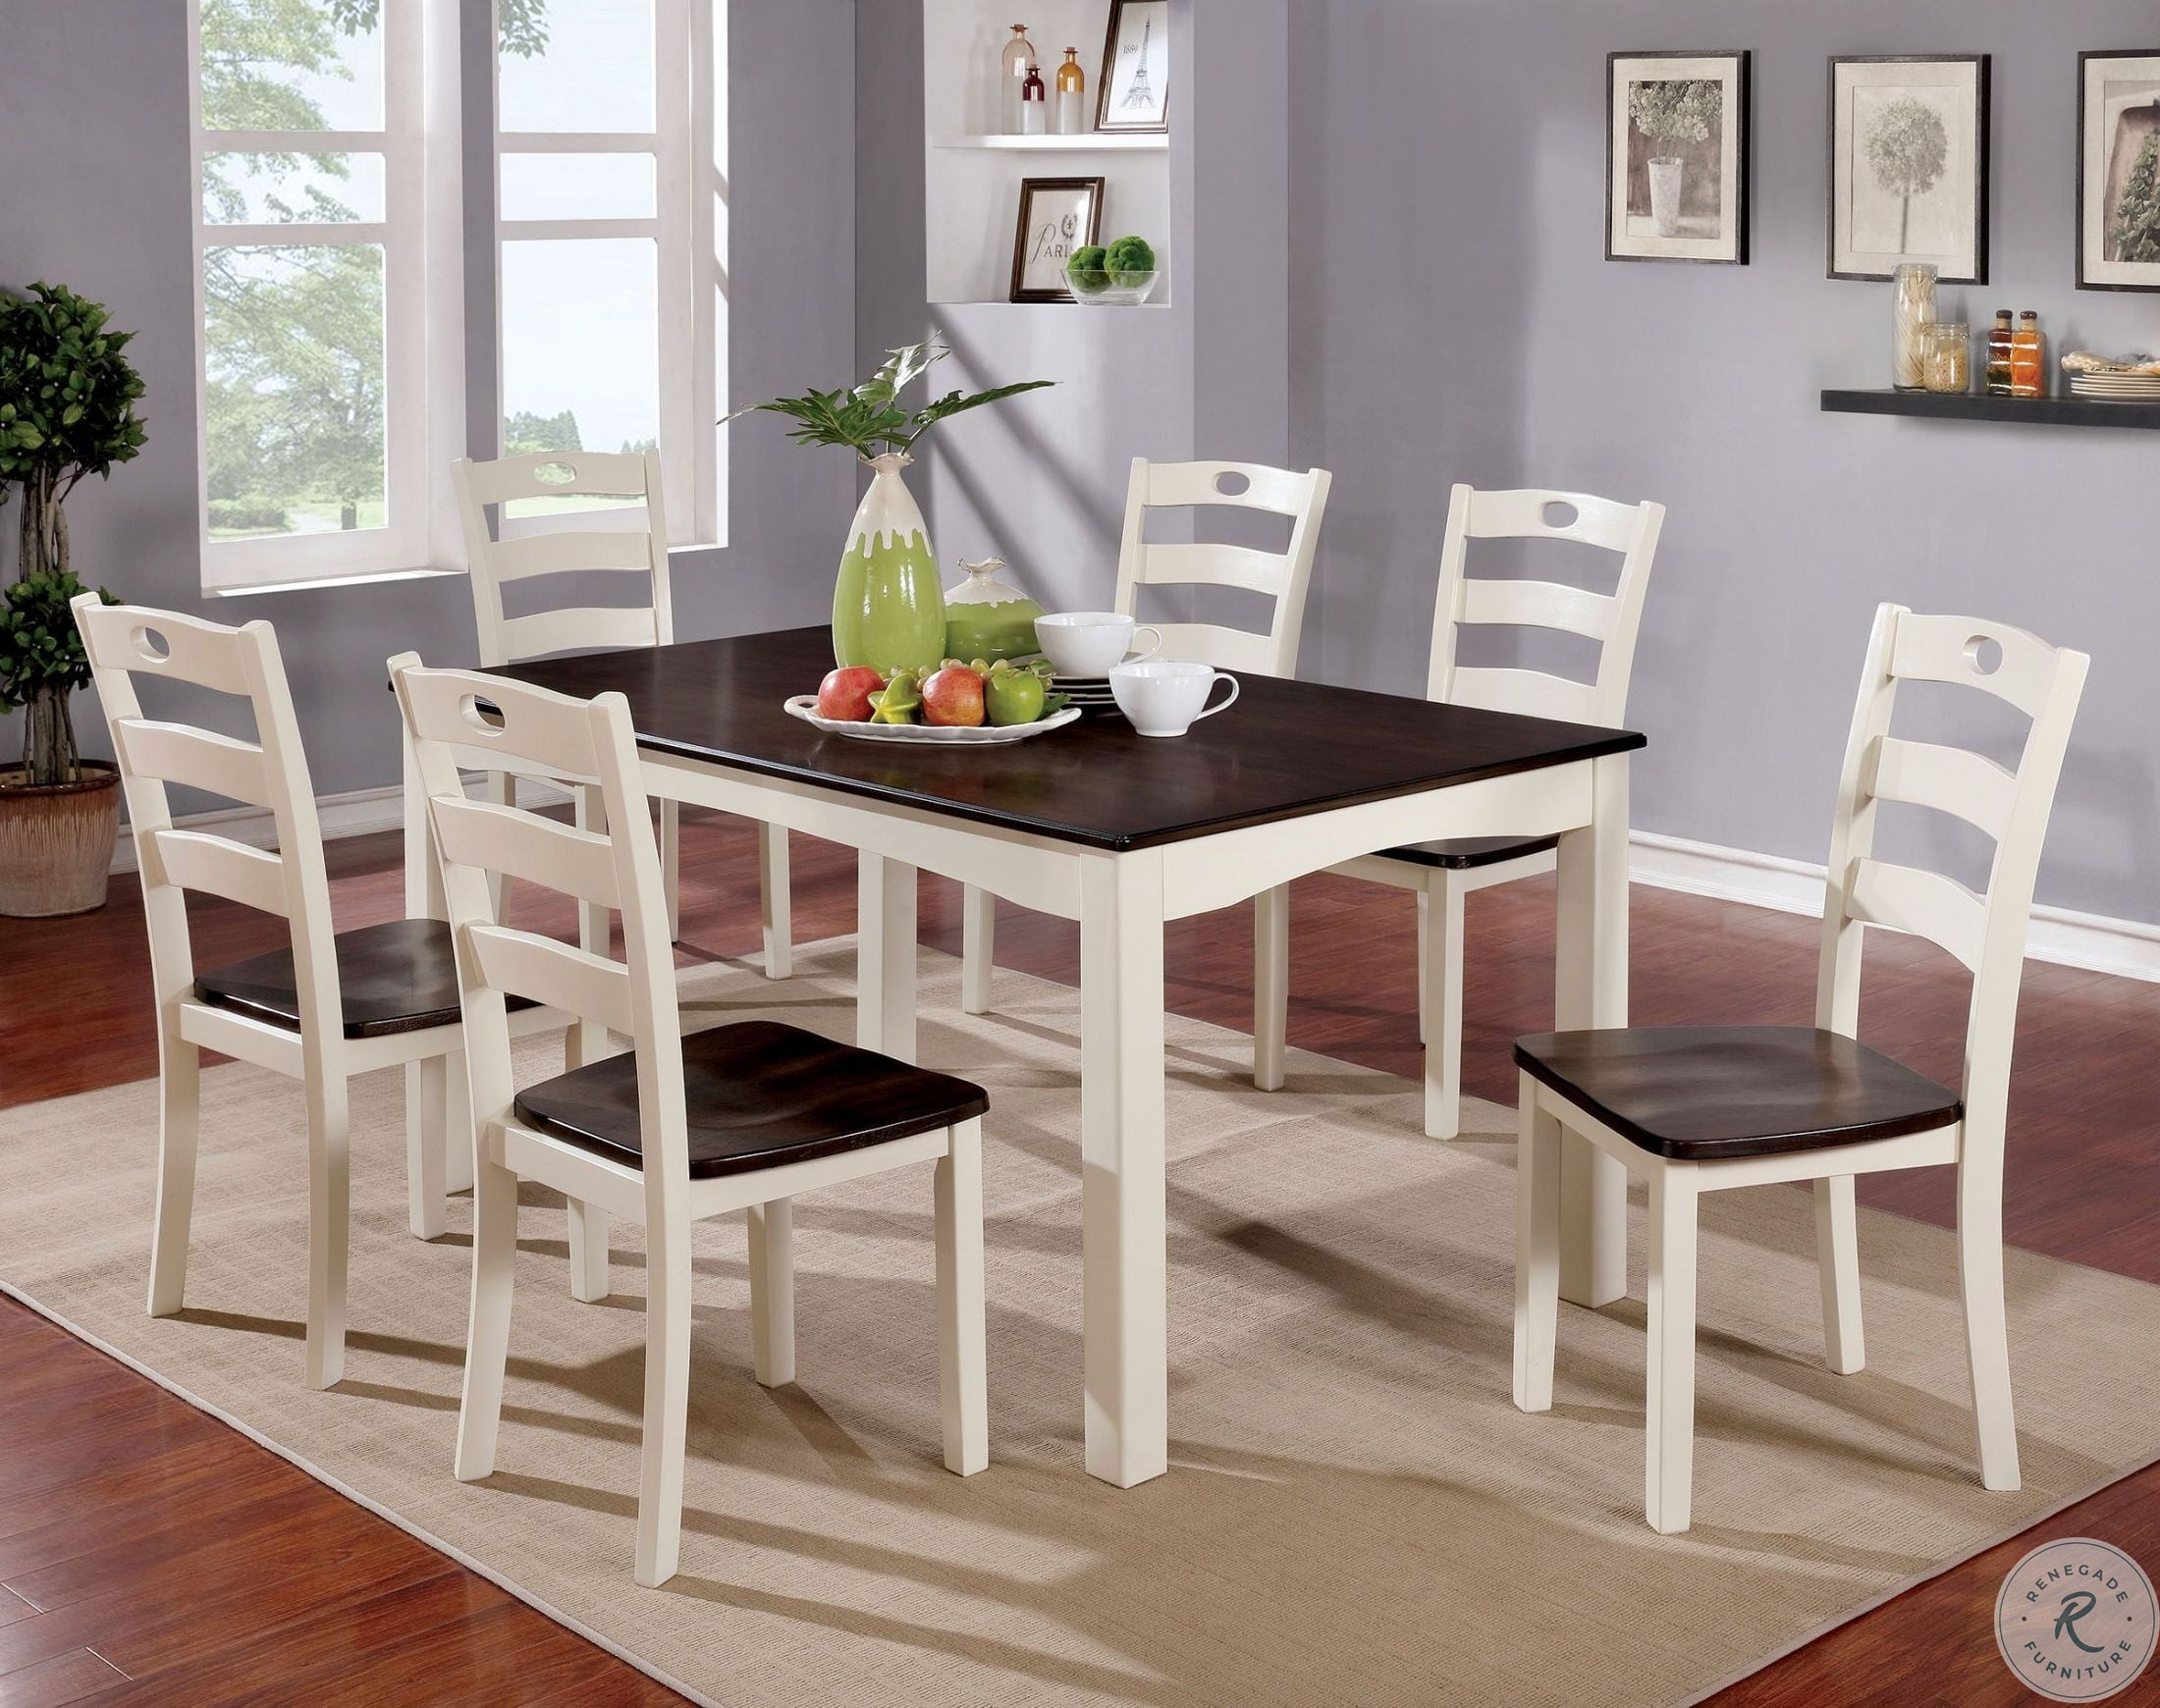 1fe5ff9f4bd3 Liliana 7 Piece White and Walnut Dining Table Set from Furniture of ...